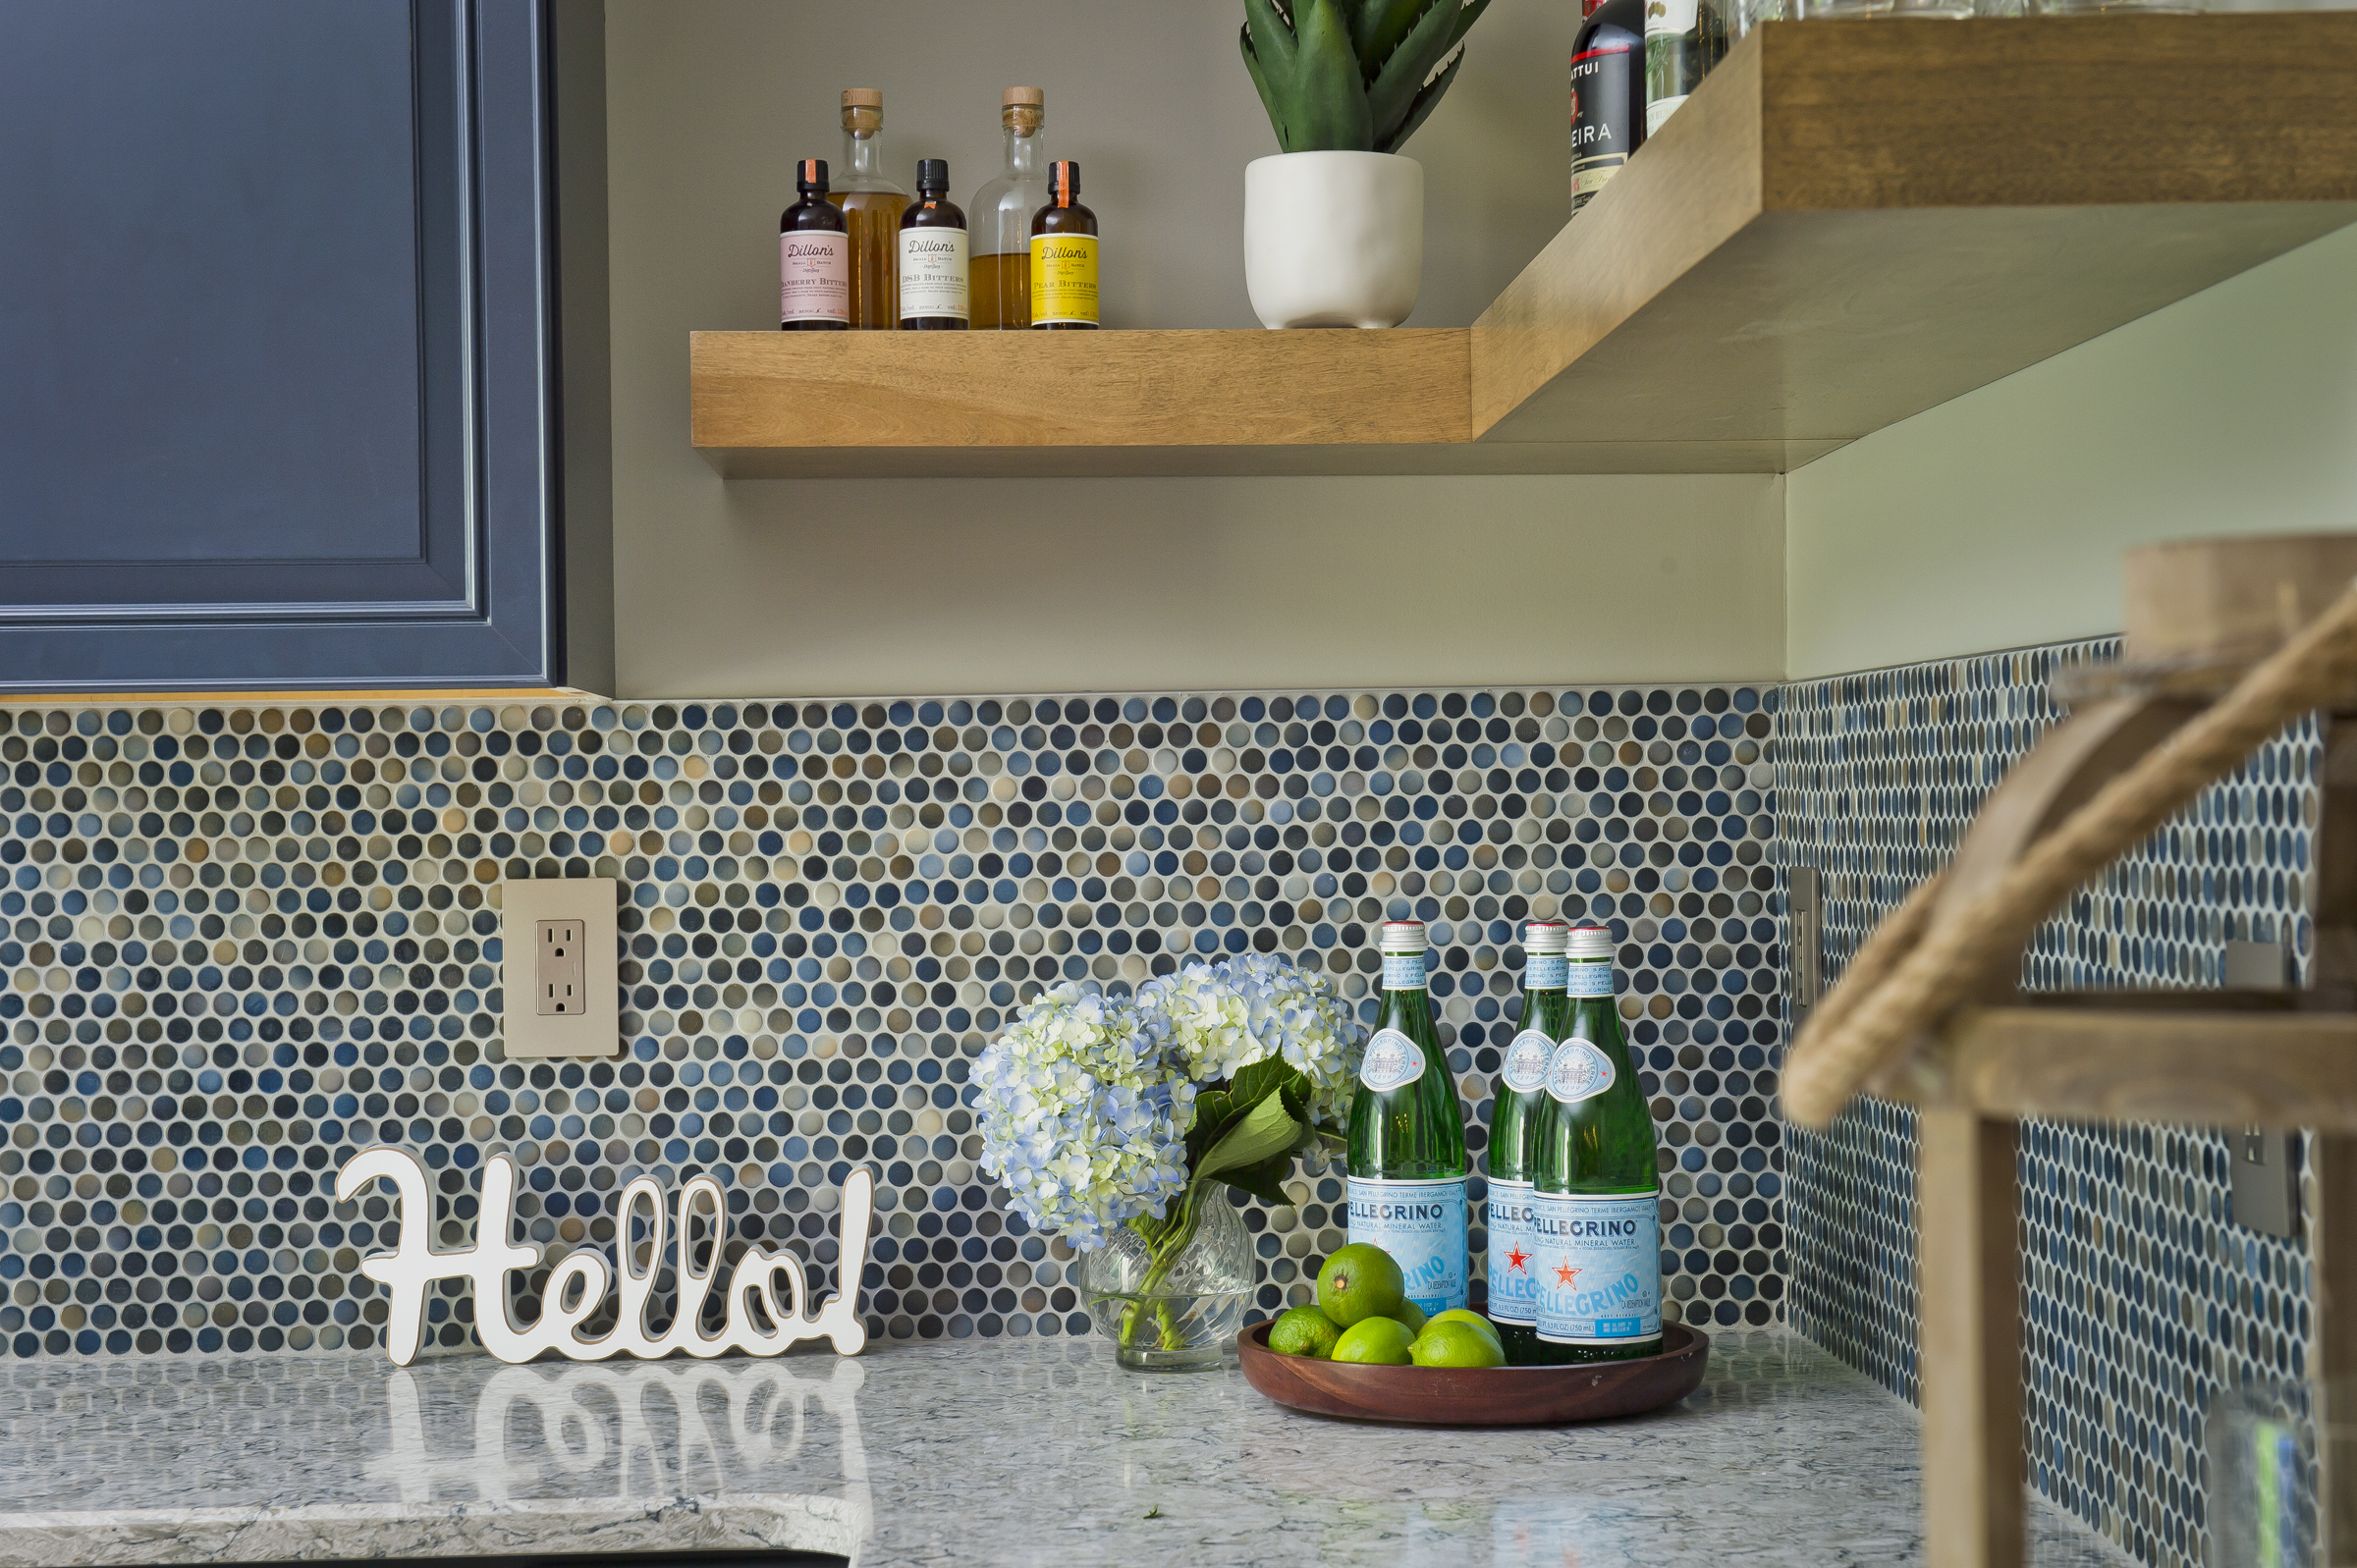 {A bit of water and fresh limes make for a great addition to any bar space.  Ash Grove Court  design by April Force Pardoe Interiors.}